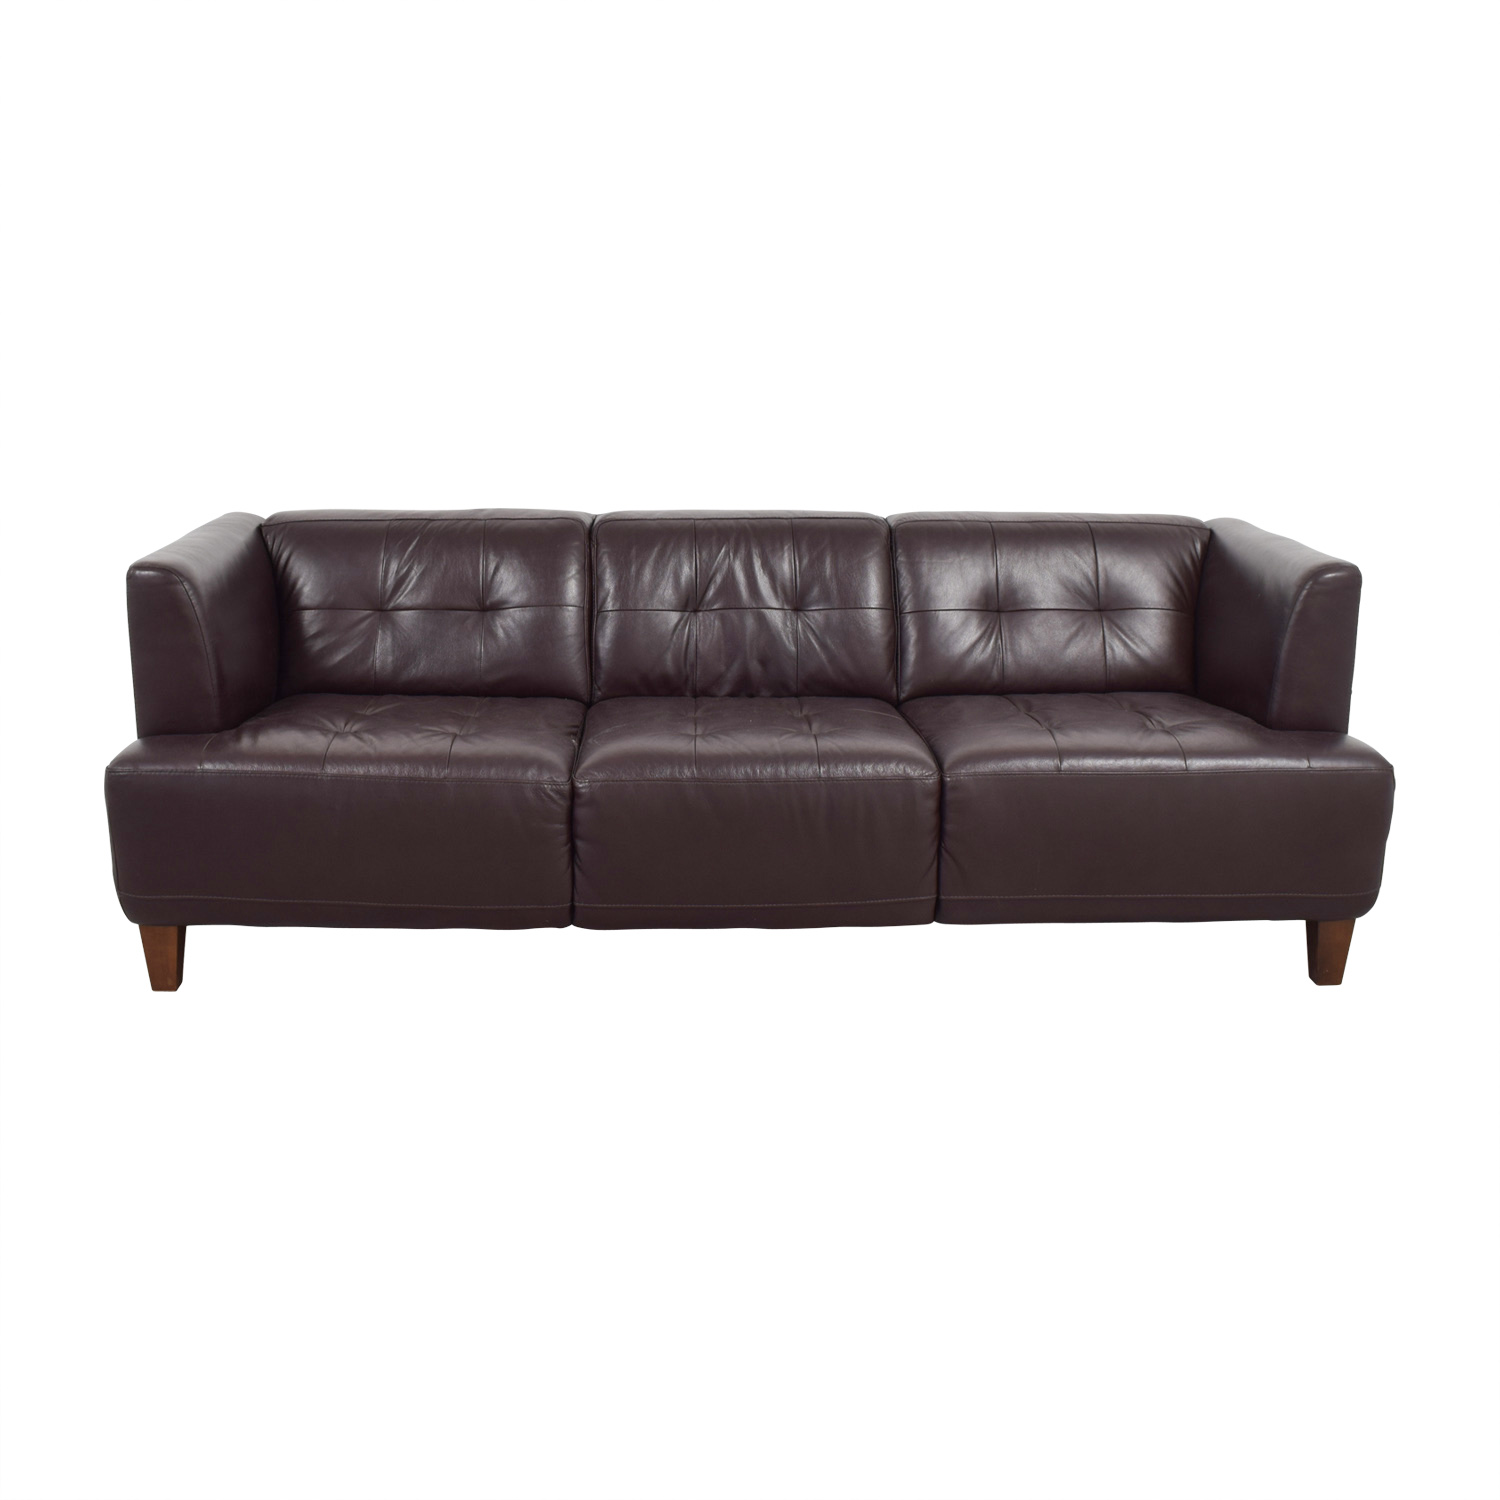 Macys Macys Brown Tufted Leather Couch Dark Chocolate